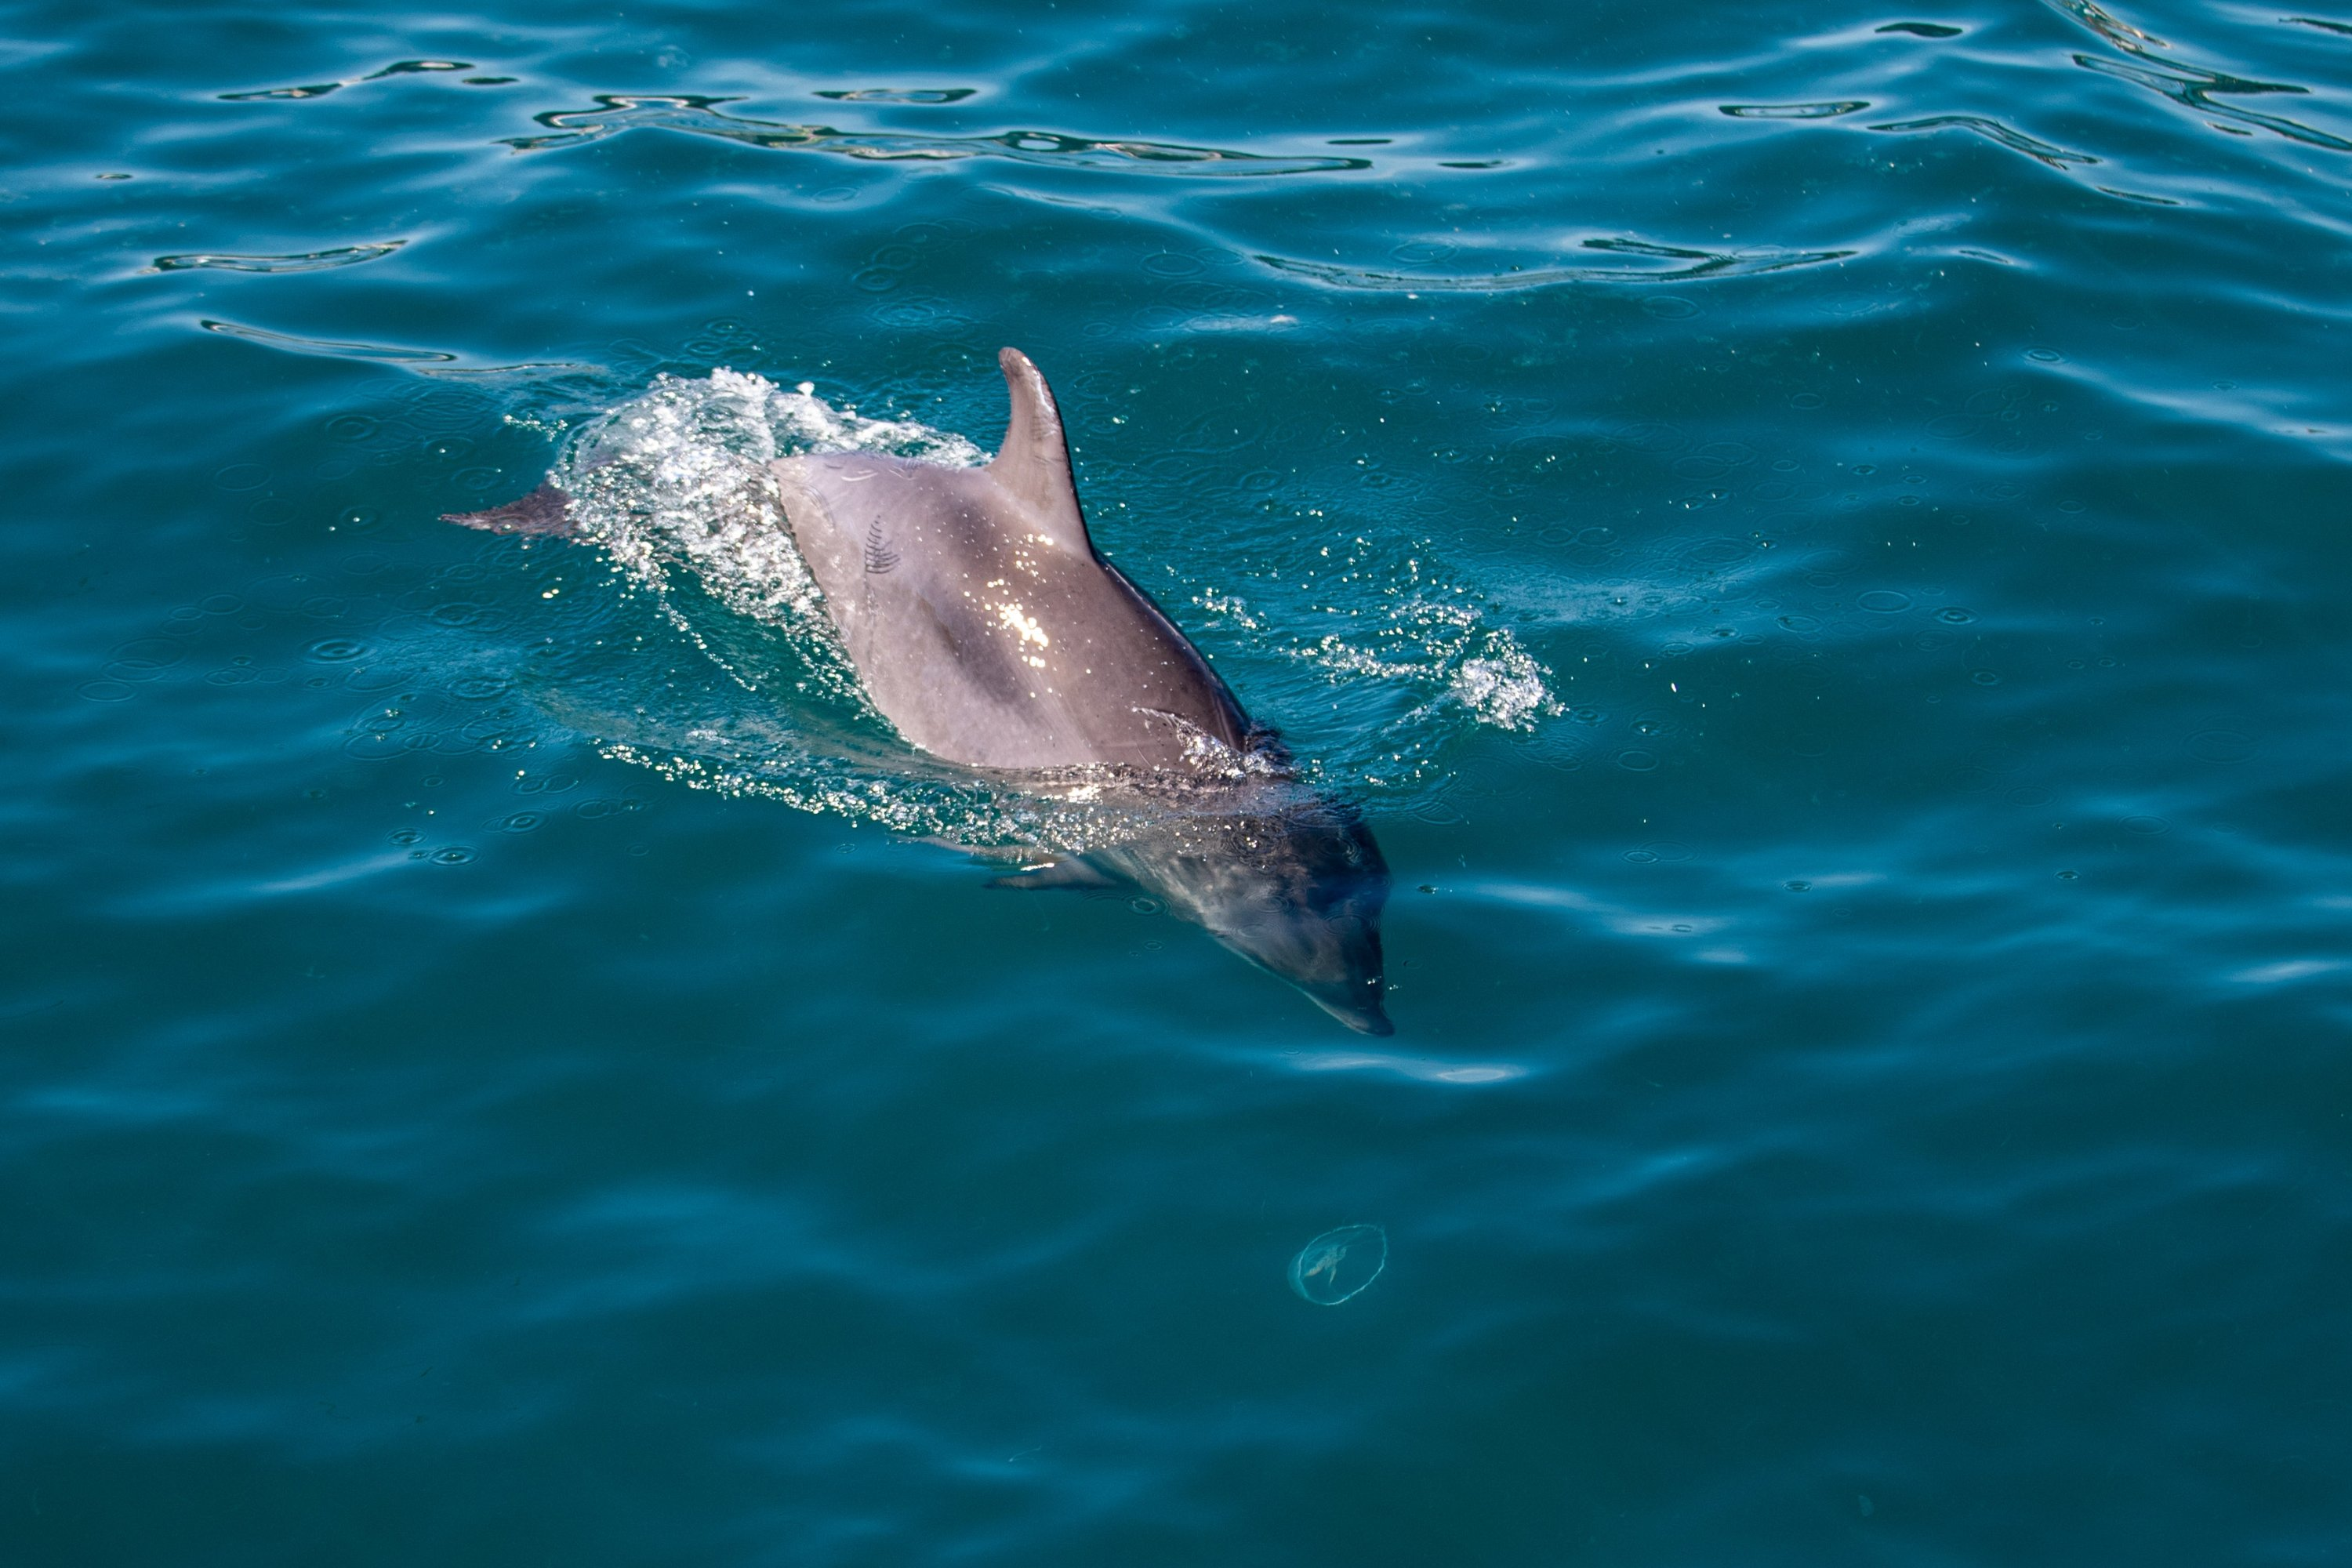 A dolphin seen swimming in Marmara see Istanbul, Turkey, May 19, 2021. (Getty Images)